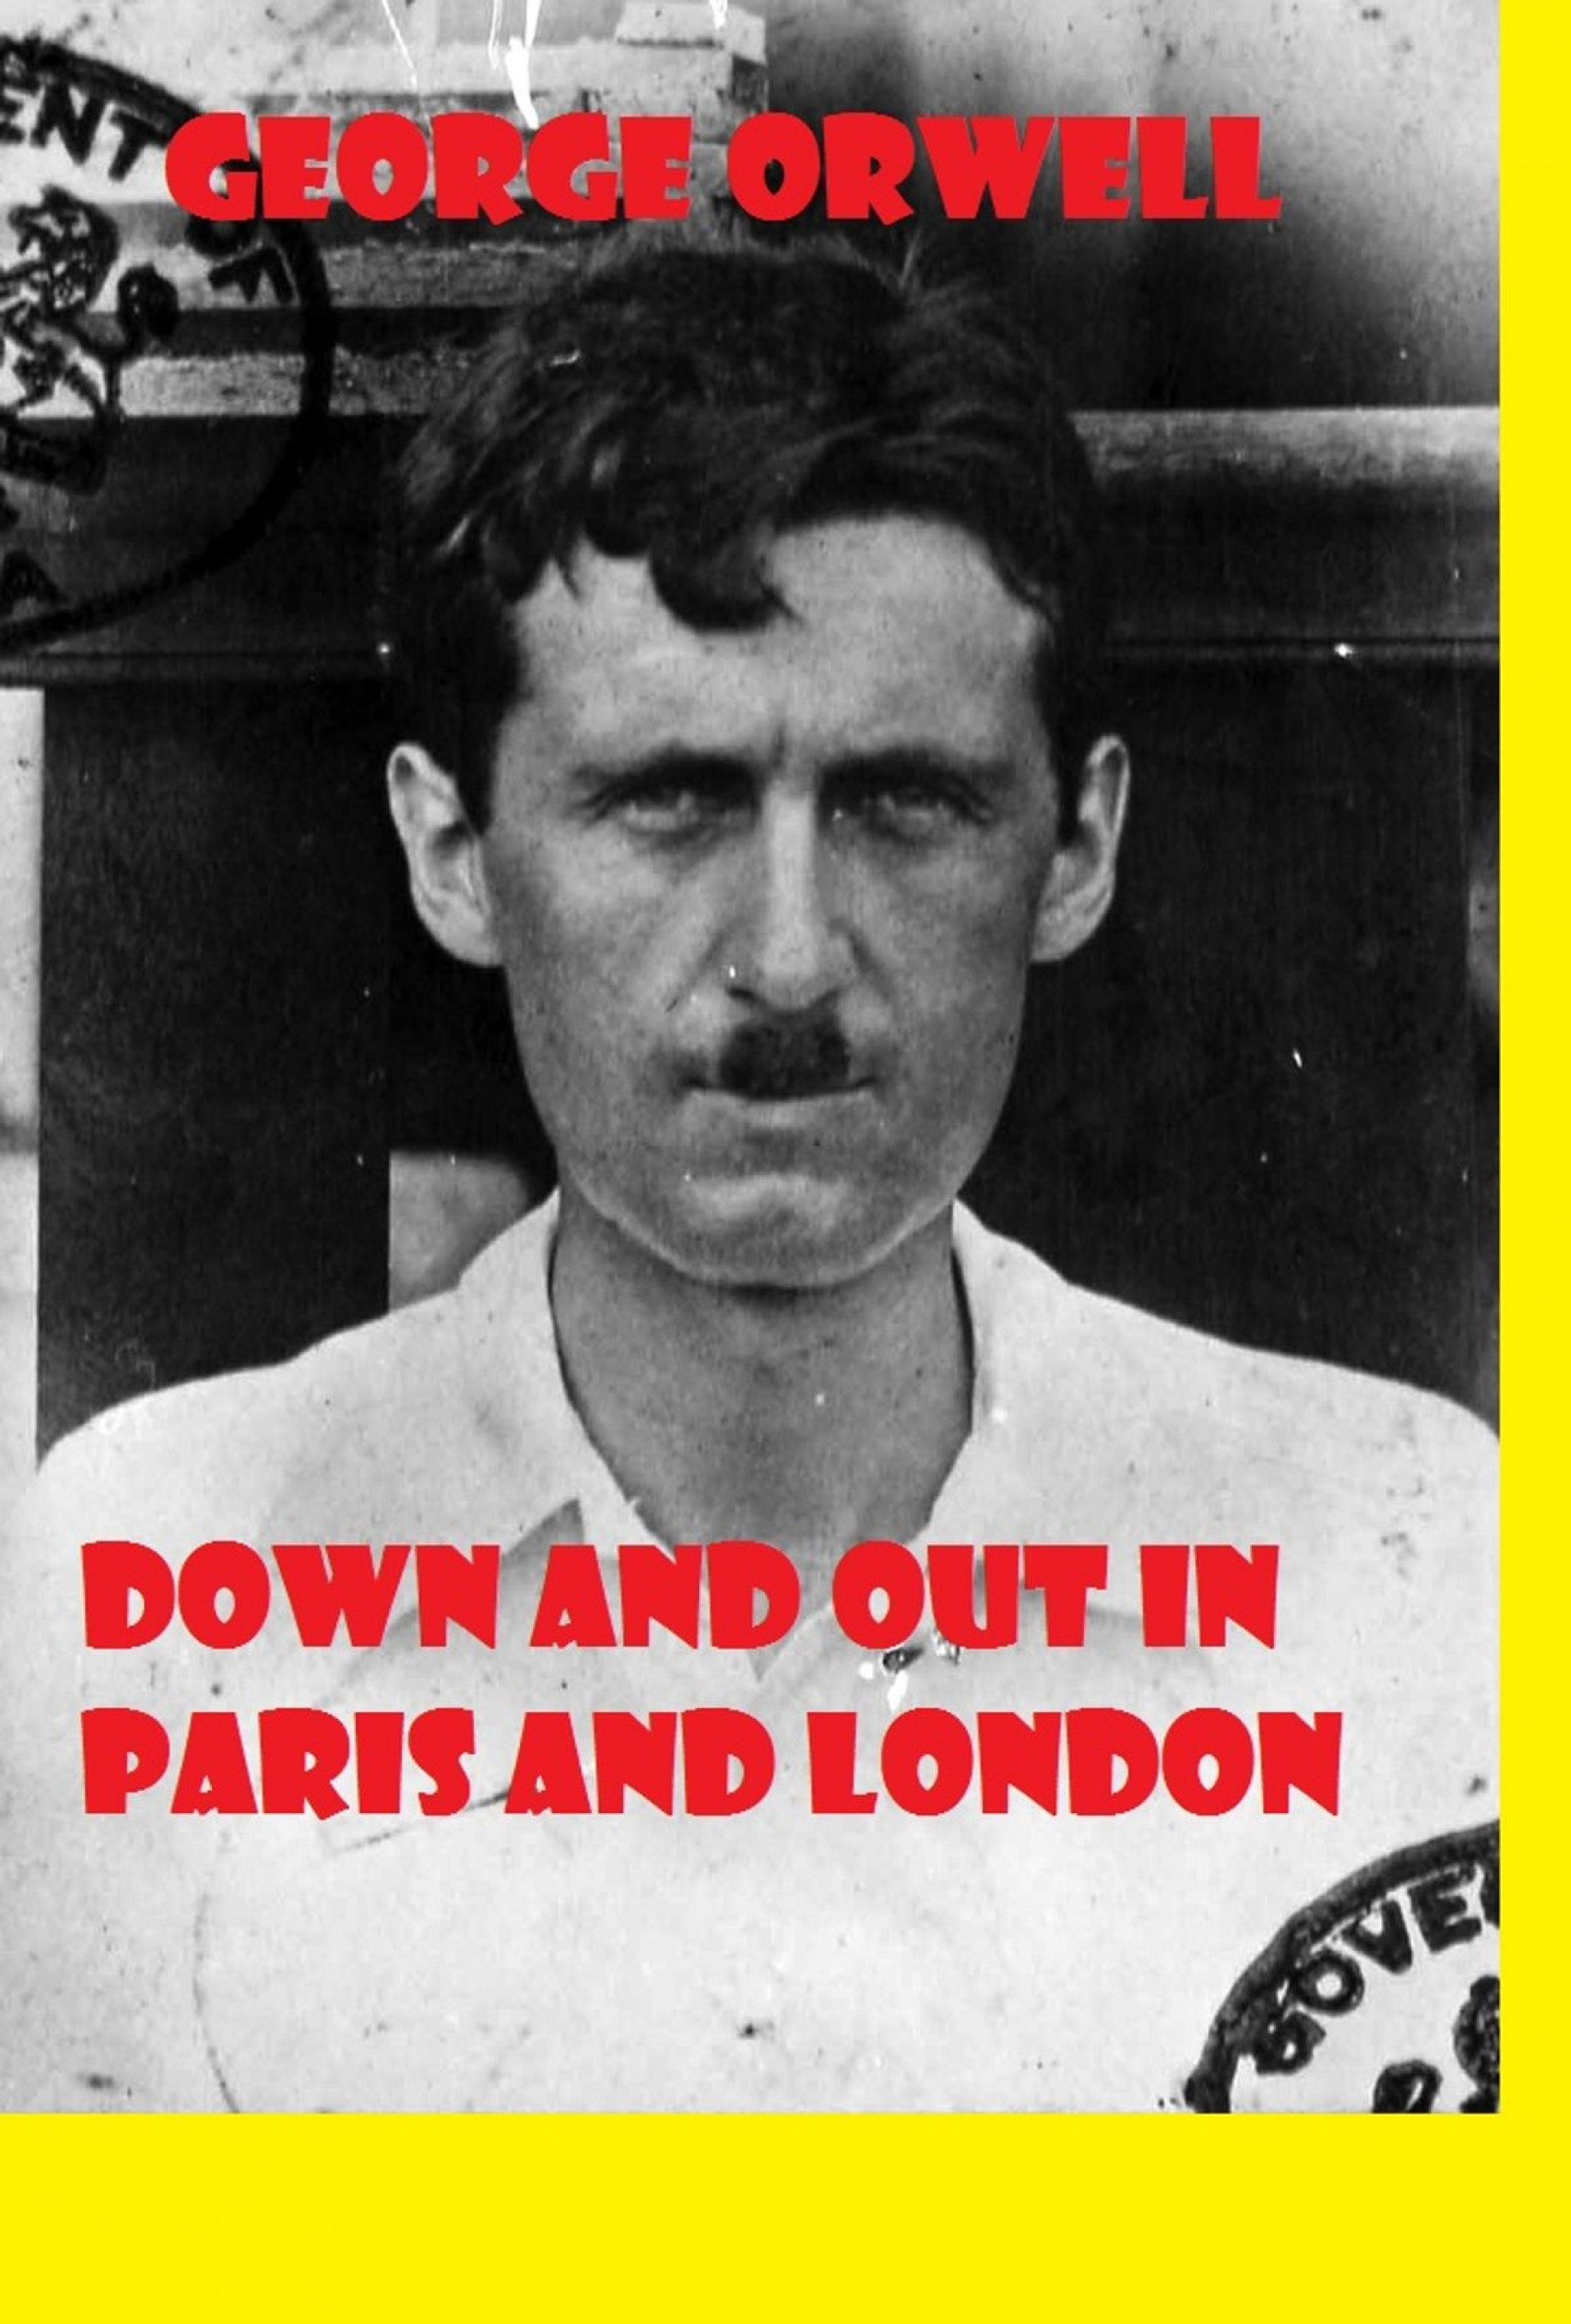 004 Down And Out In Paris London Essay Breathtaking 1920